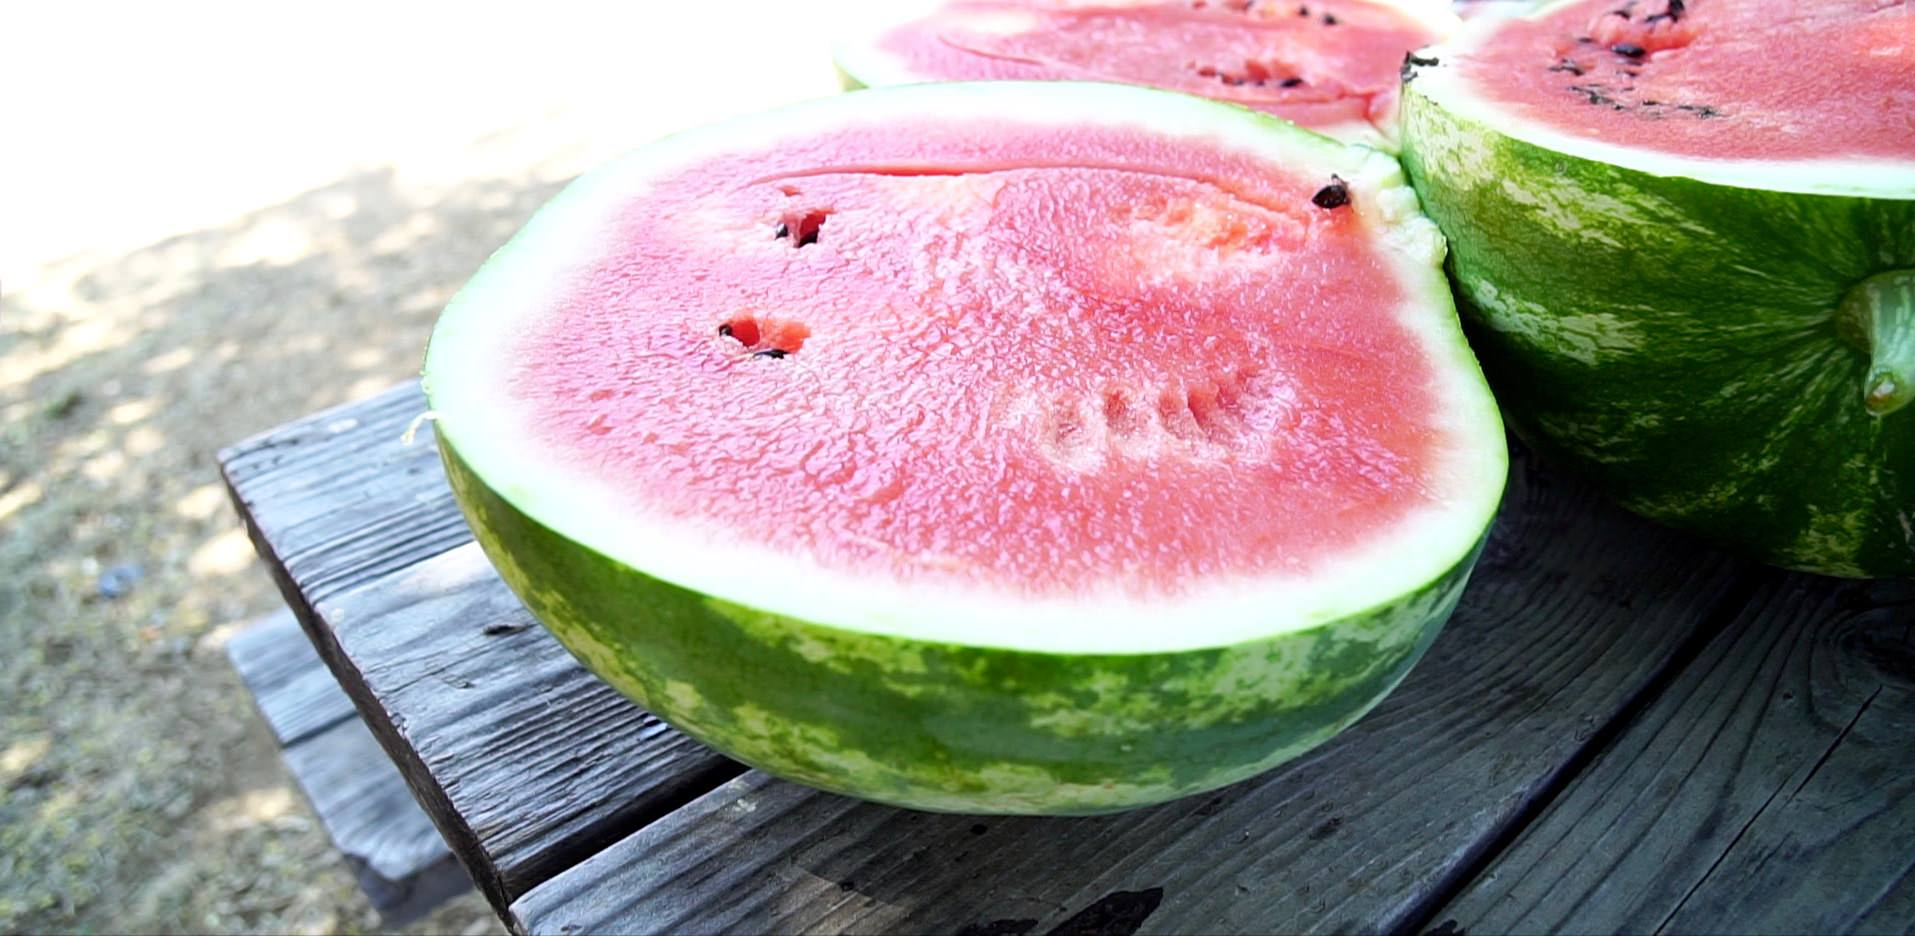 Growing Watermelon in a Container – 3 Tips for Success